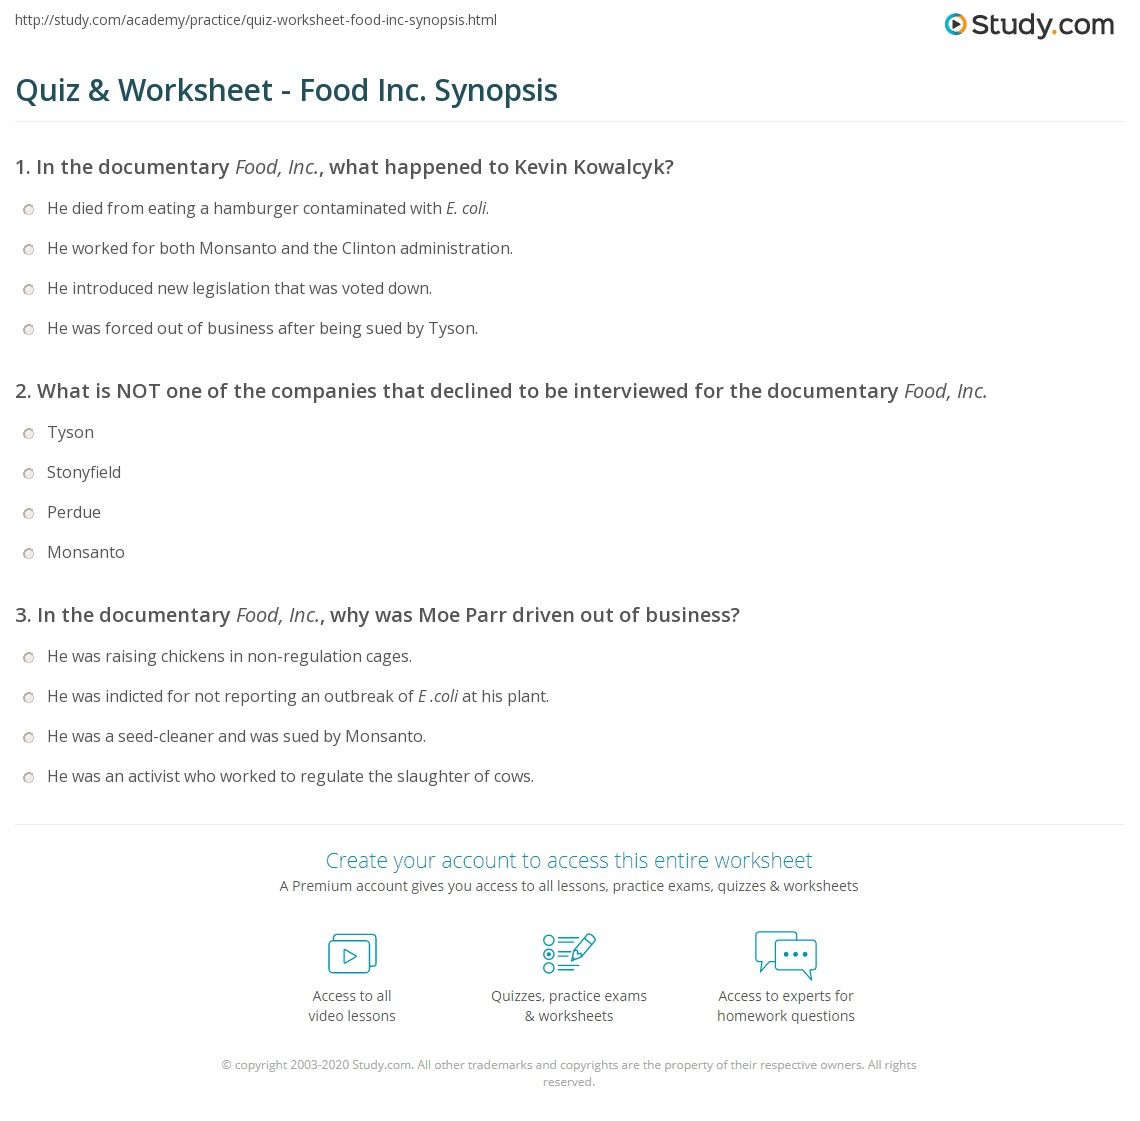 Quiz & Worksheet - Food Inc. Synopsis | Study.com